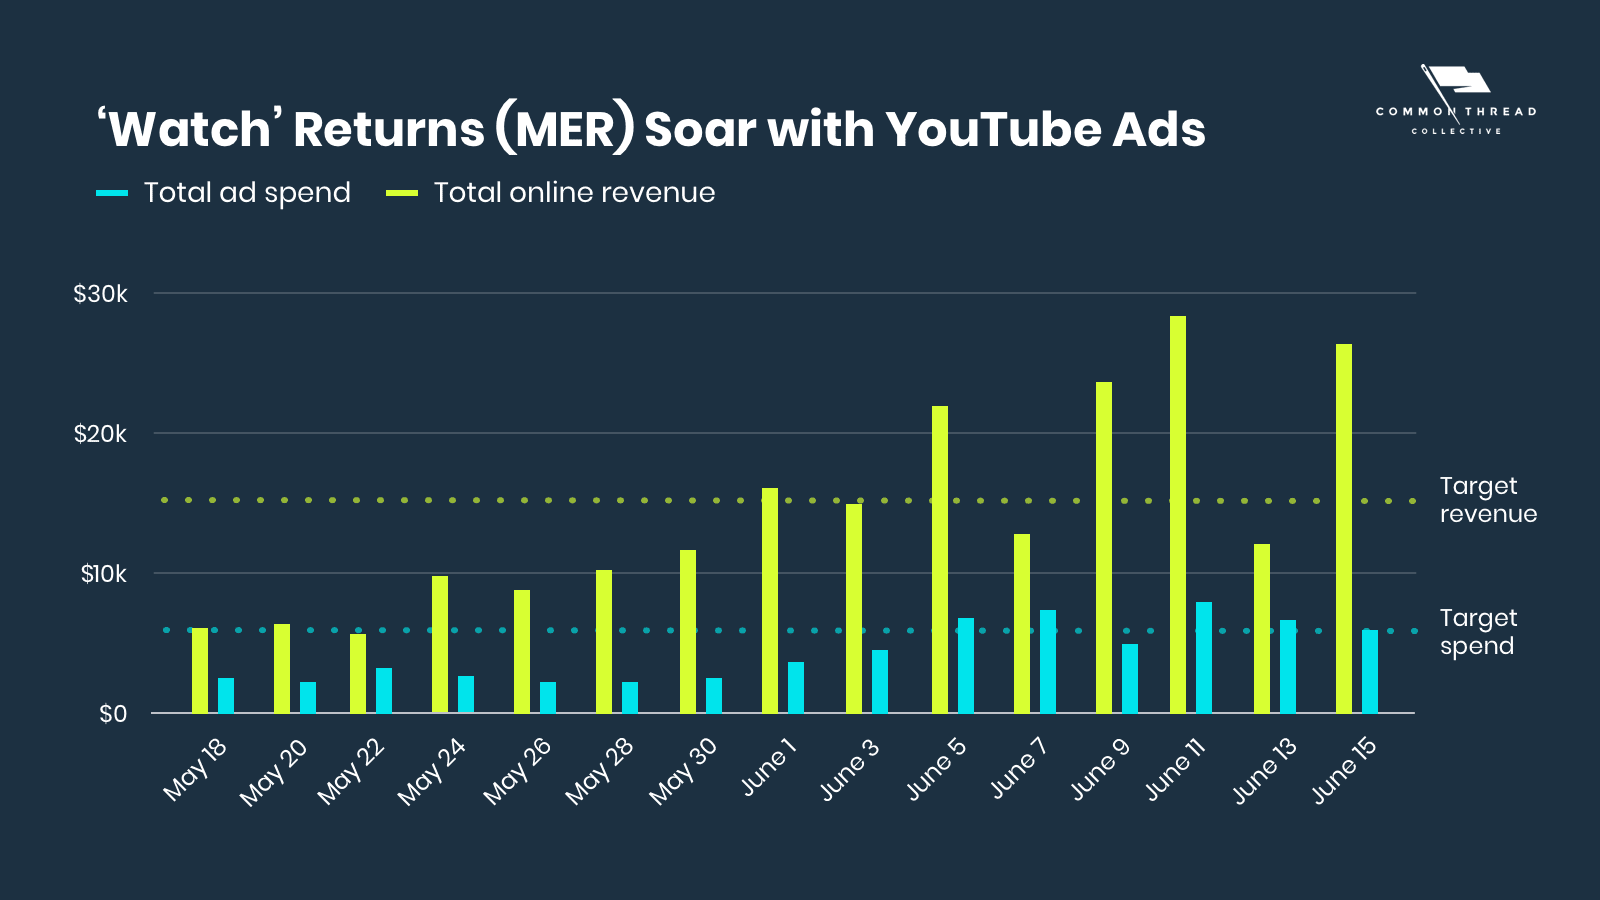 Watch Returns (MER) Soar with YouTube Ads for Ecommerce